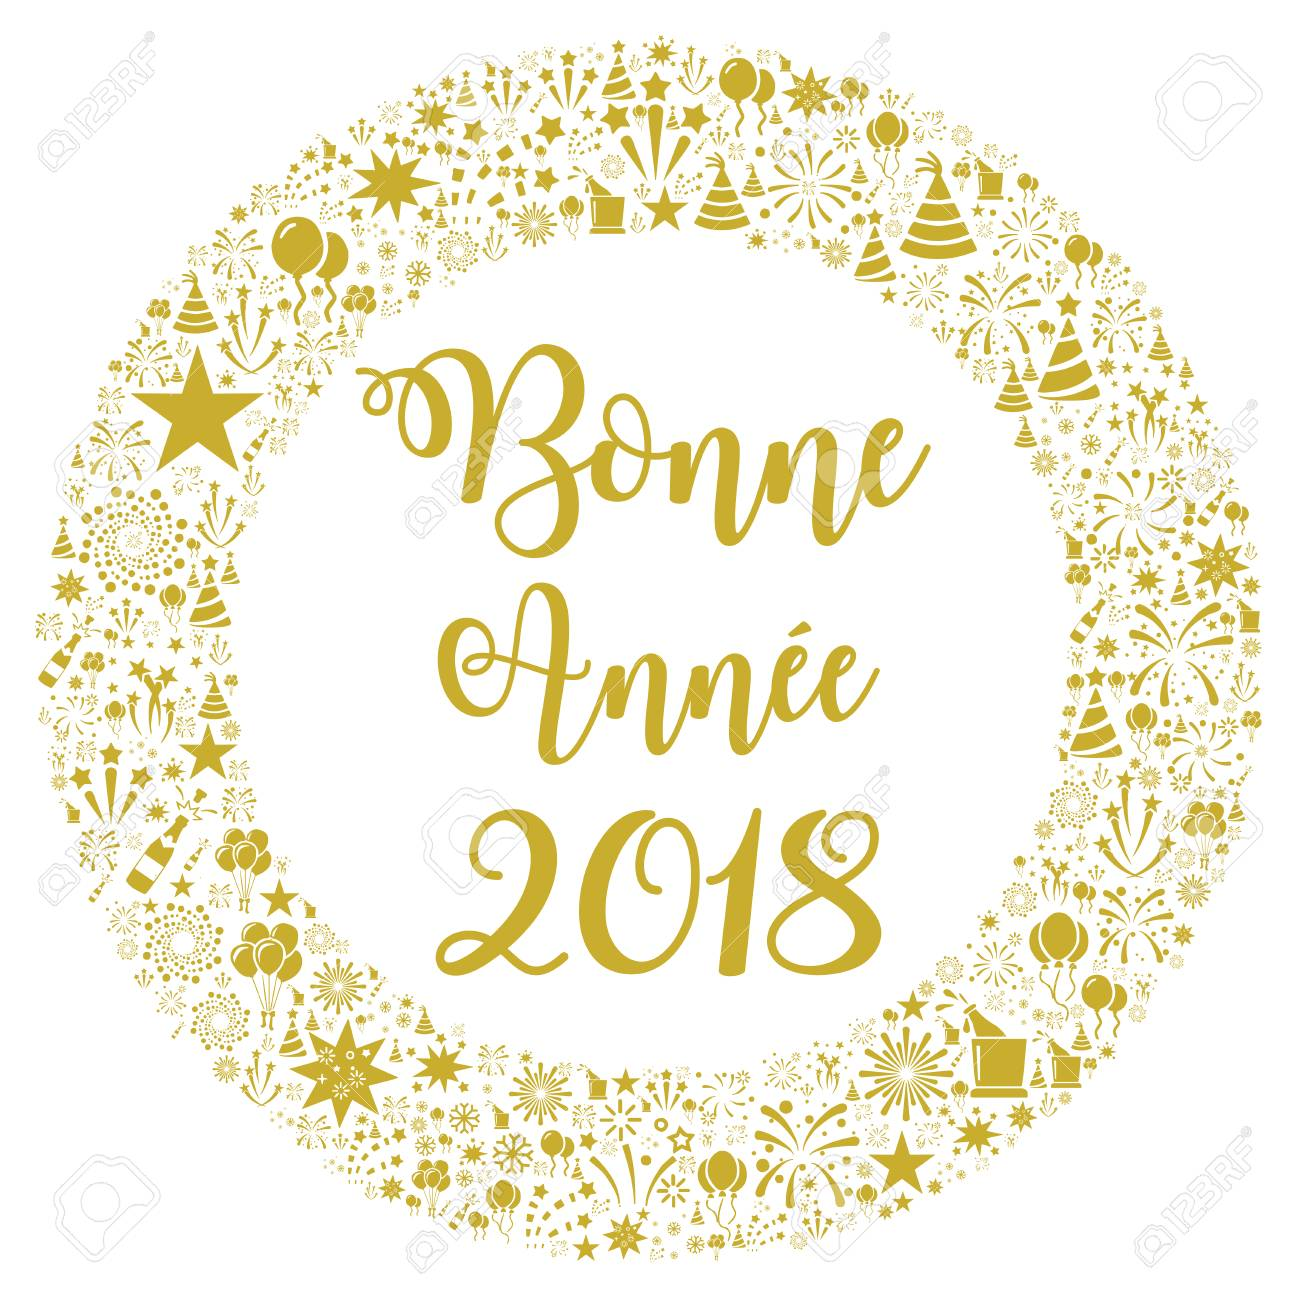 happy new year 2018 in french stock photo 92742556